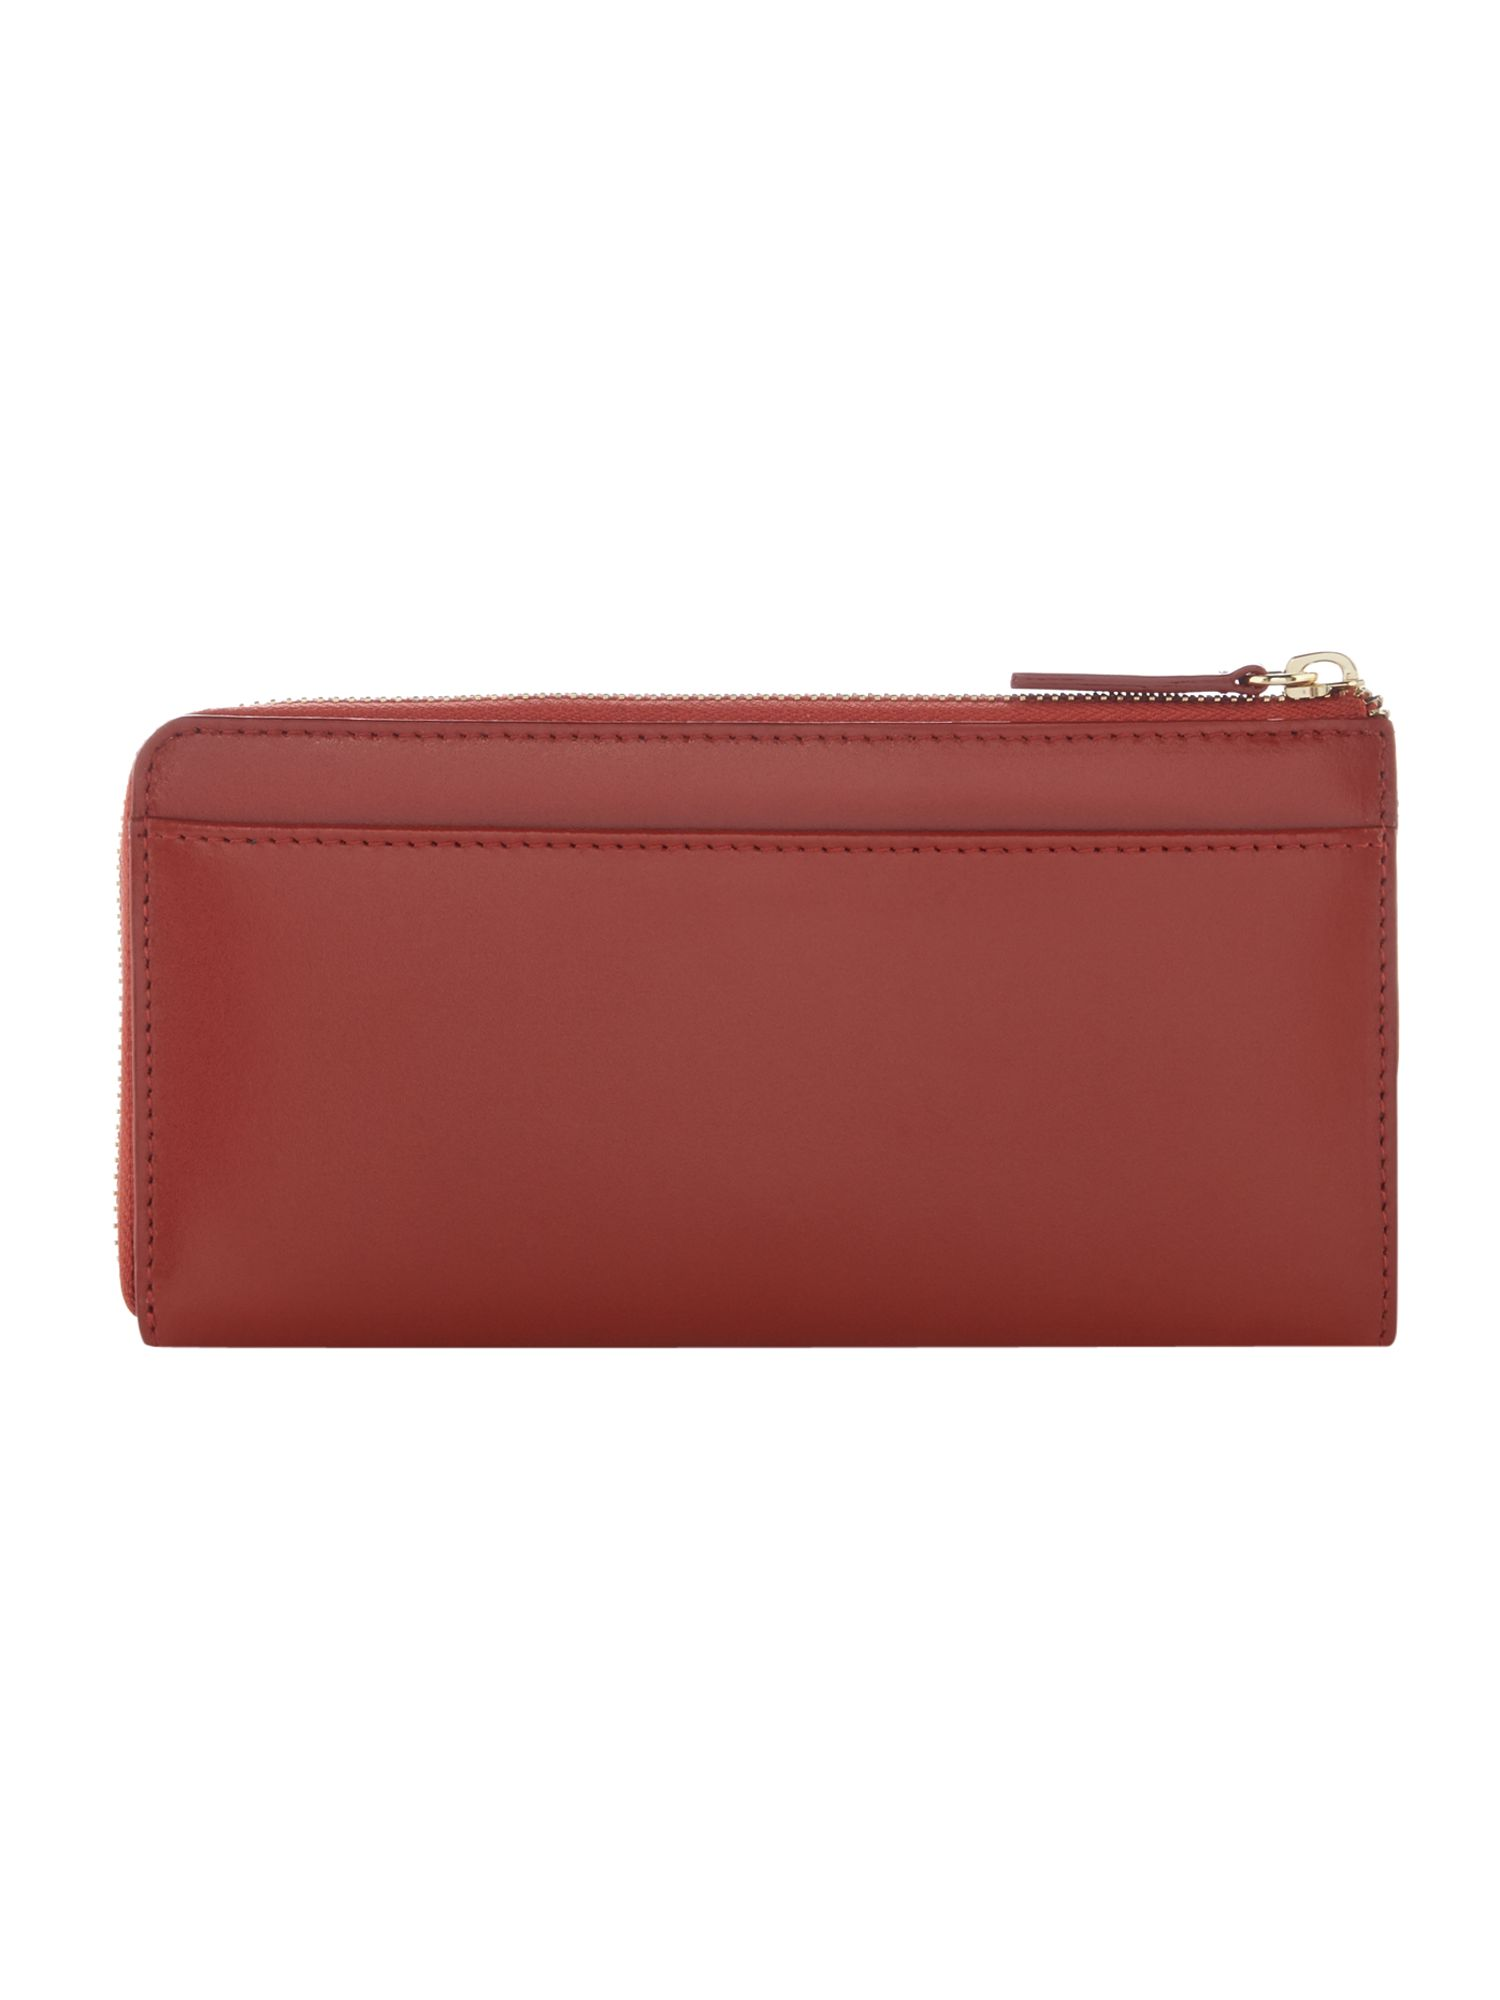 Linea Bennie Leather Zip Around Wallet, Orange